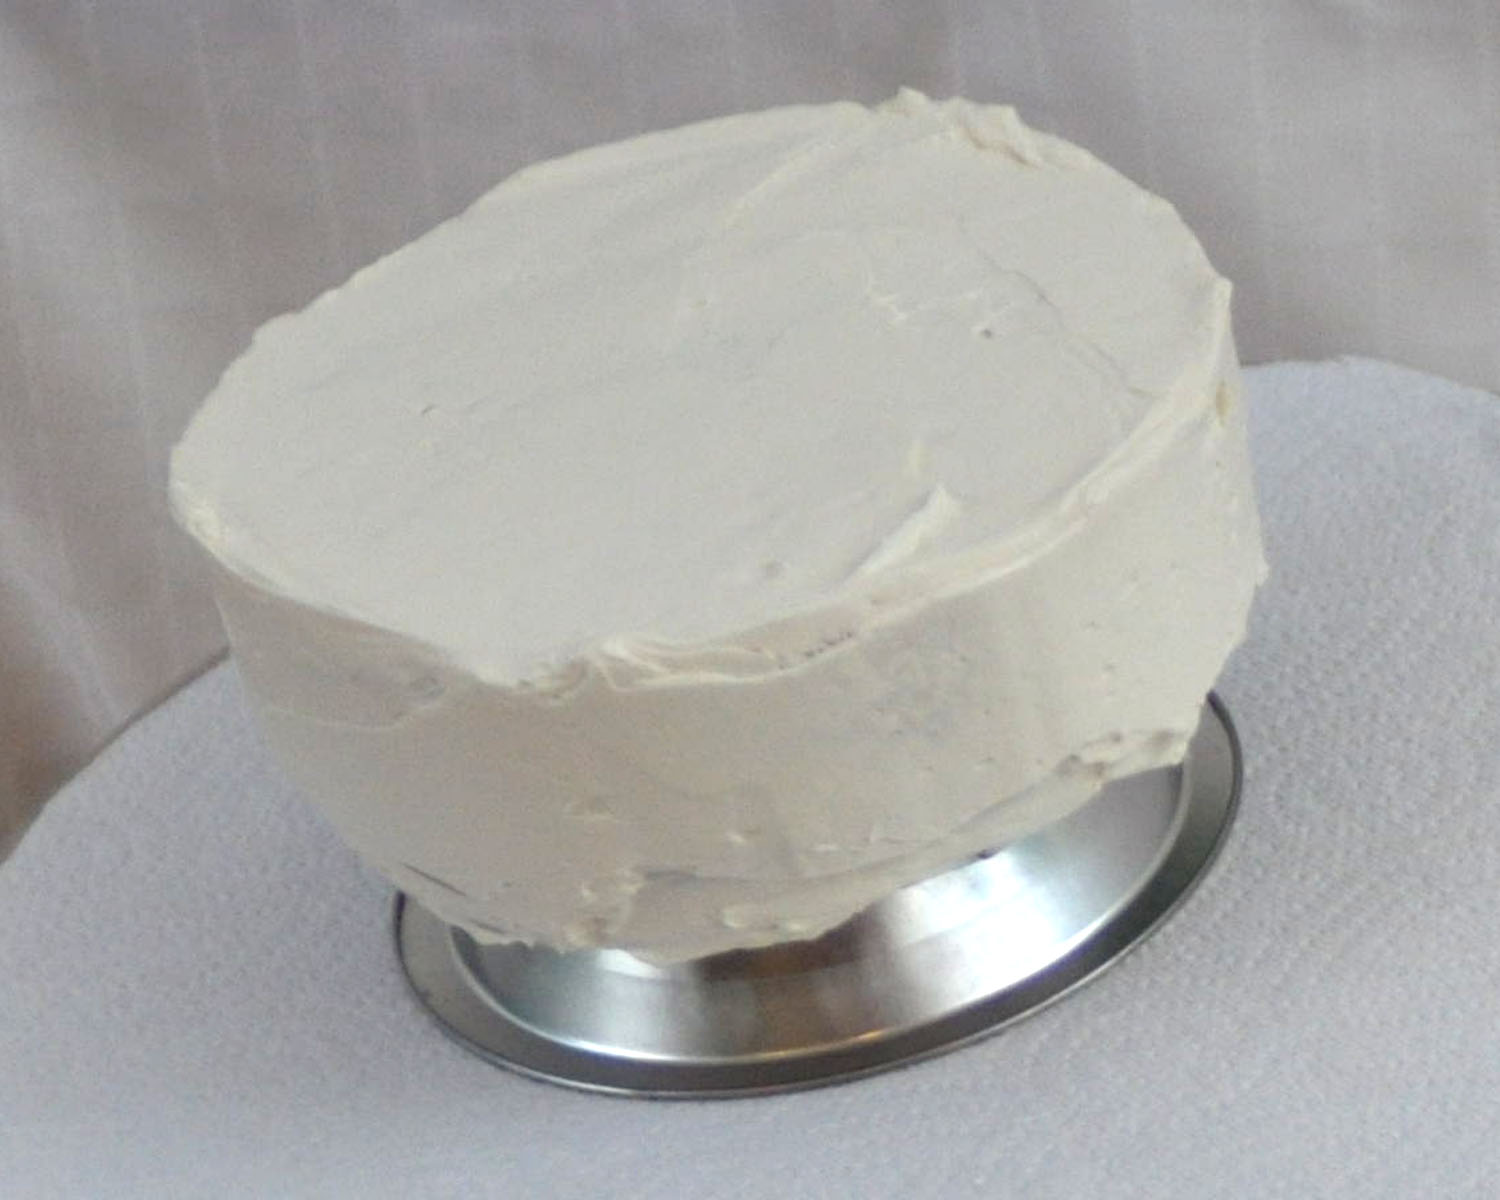 Cake Recipe For Icing With Fondant: Beki Cook's Cake Blog: How To Cover A Cake With Fondant